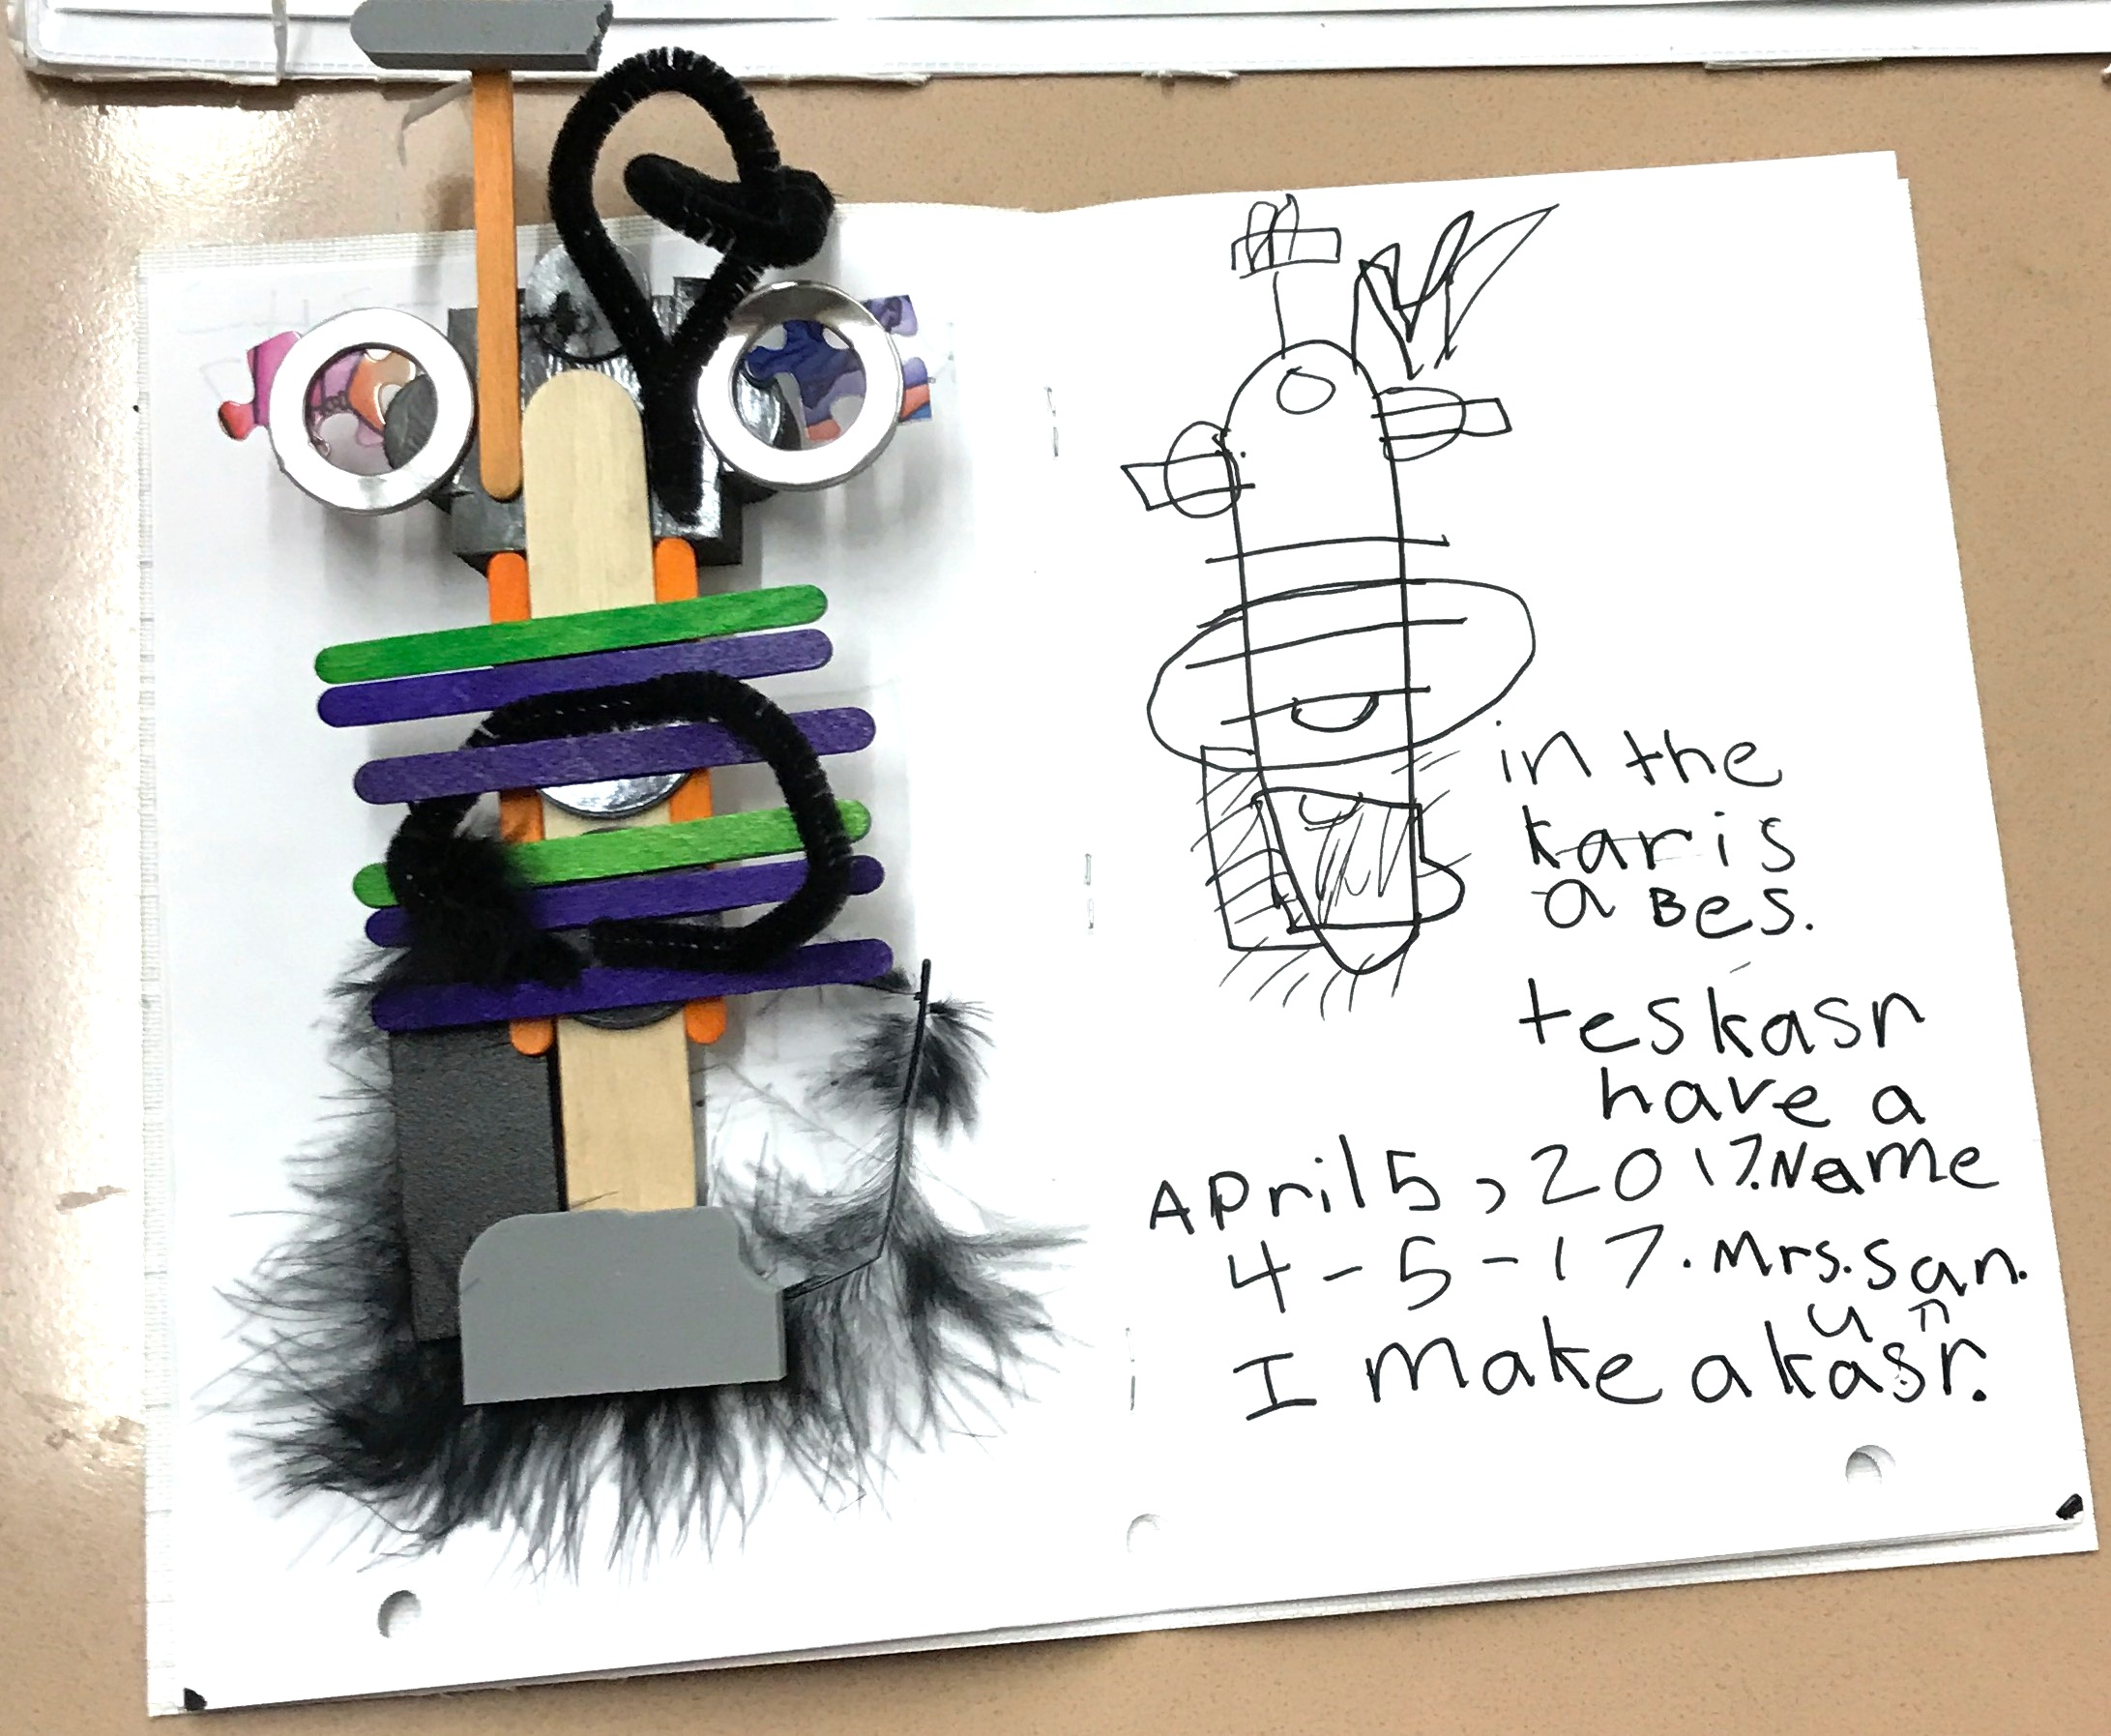 A young student deepens his learning by drawing his creation in a journal